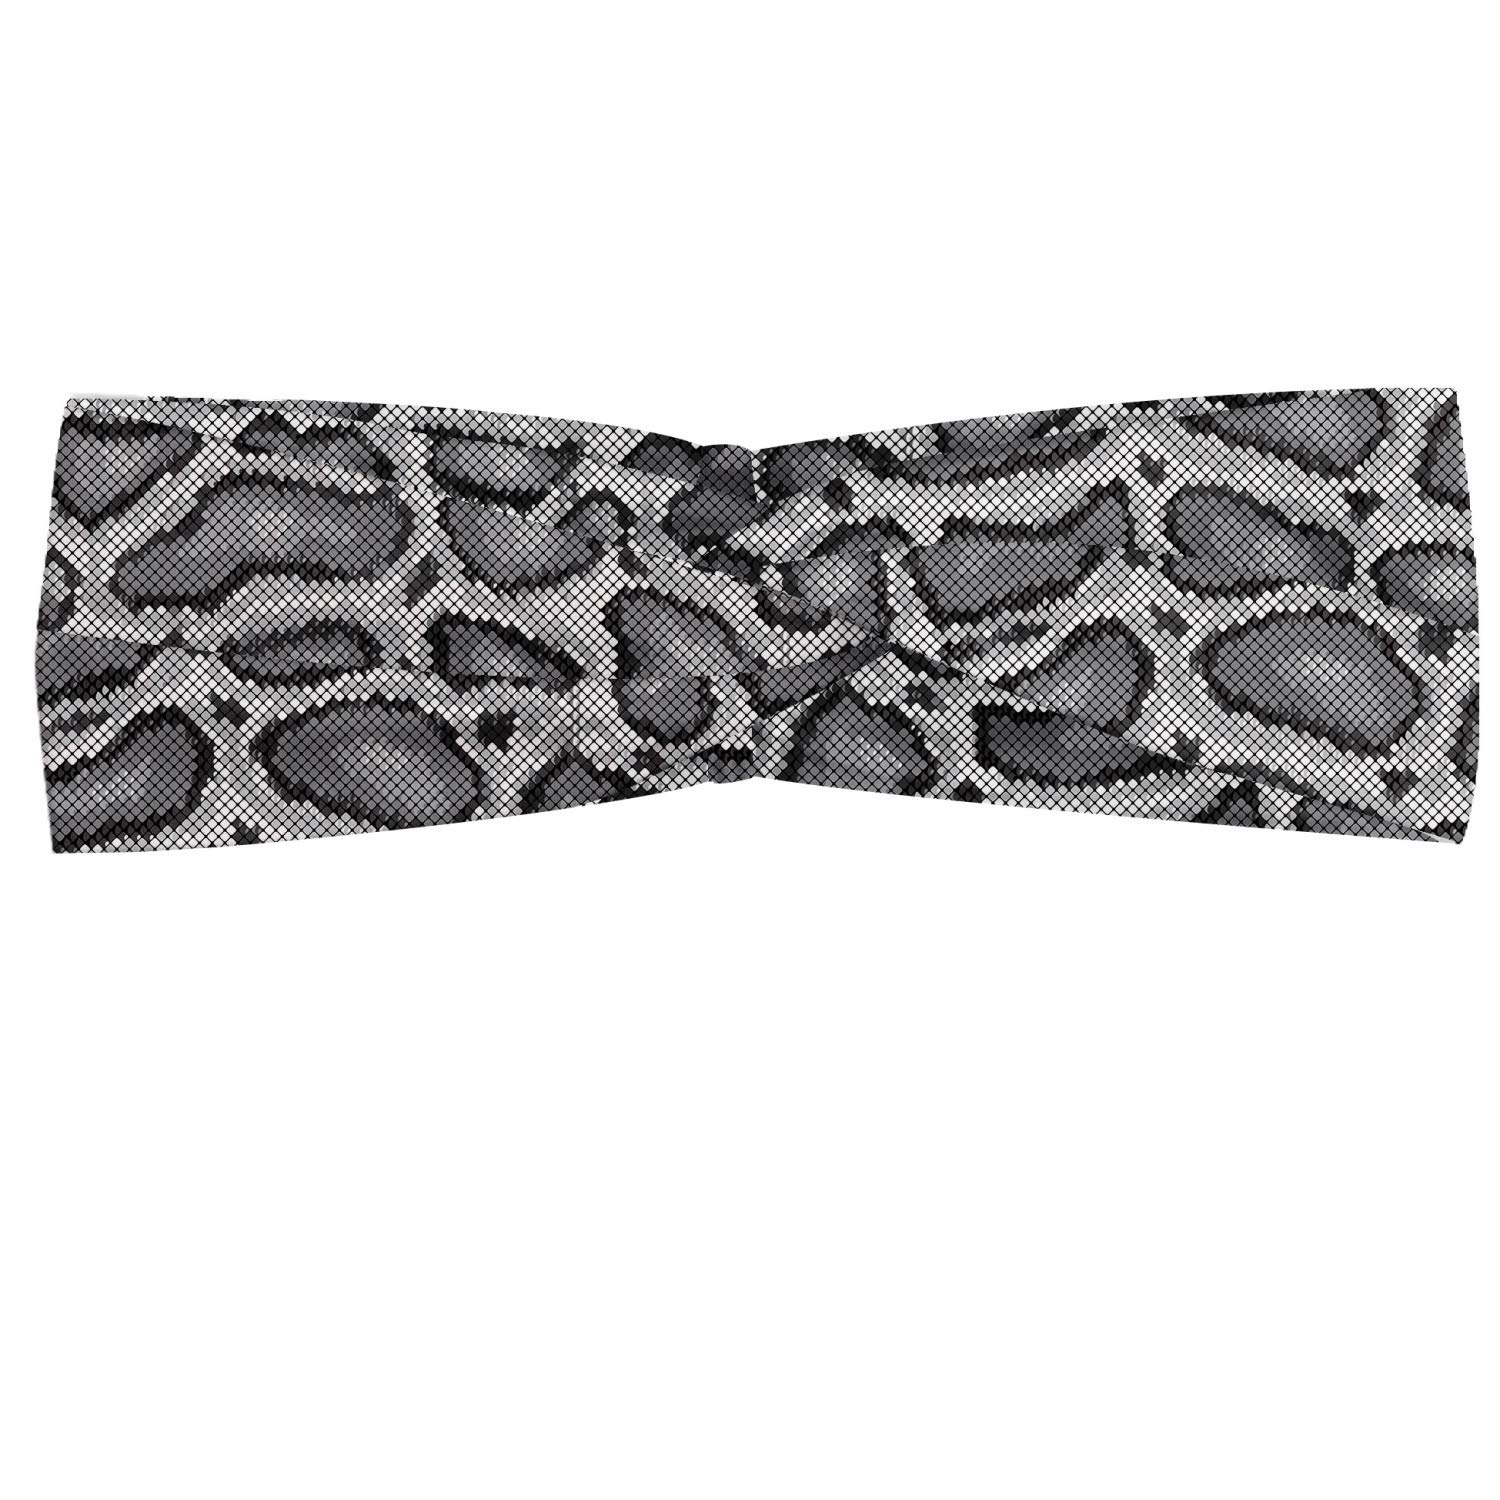 Lunarable Reptile Headband, Python Snake Skin Design Monochrome Abstract Animal Hide Pattern Geometric, Elastic and Soft Women's Bandana for Sports and Everyday Use, Grey Charcoal Grey